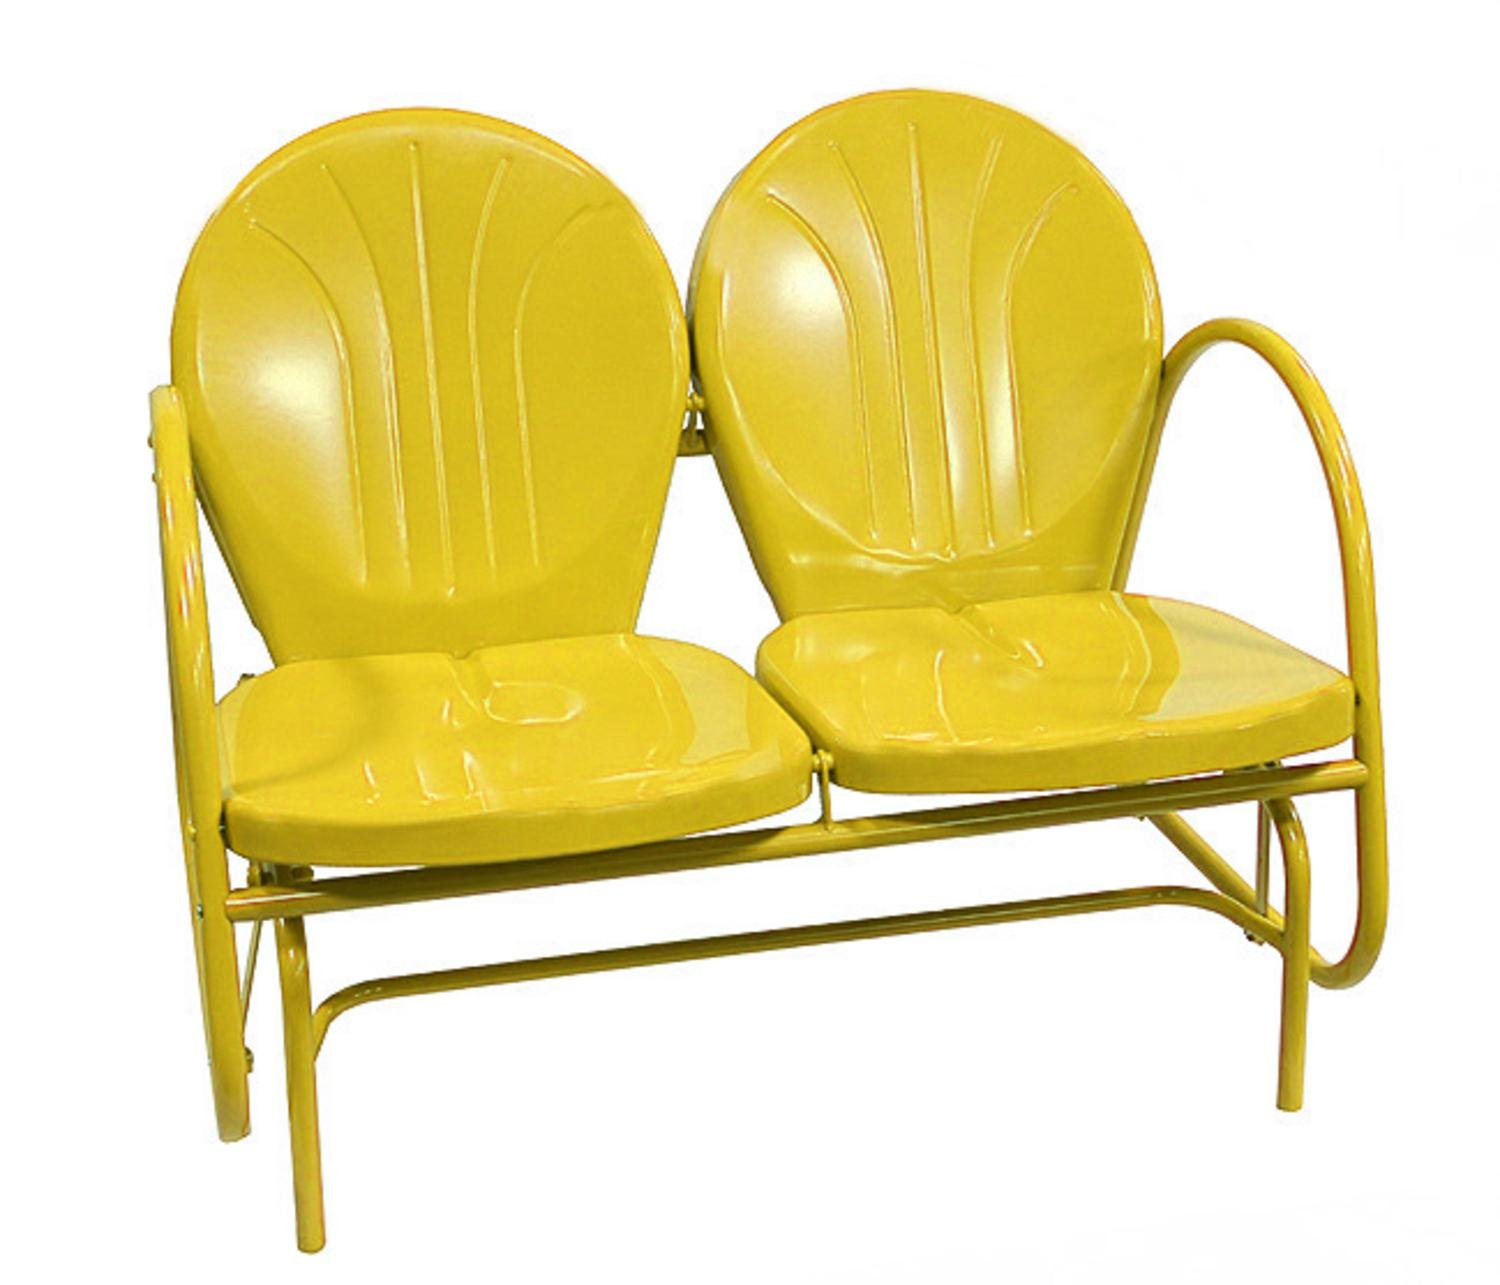 Yellow Metal Chairs Sunshine Yellow Retro Metal Tulip Double Glider